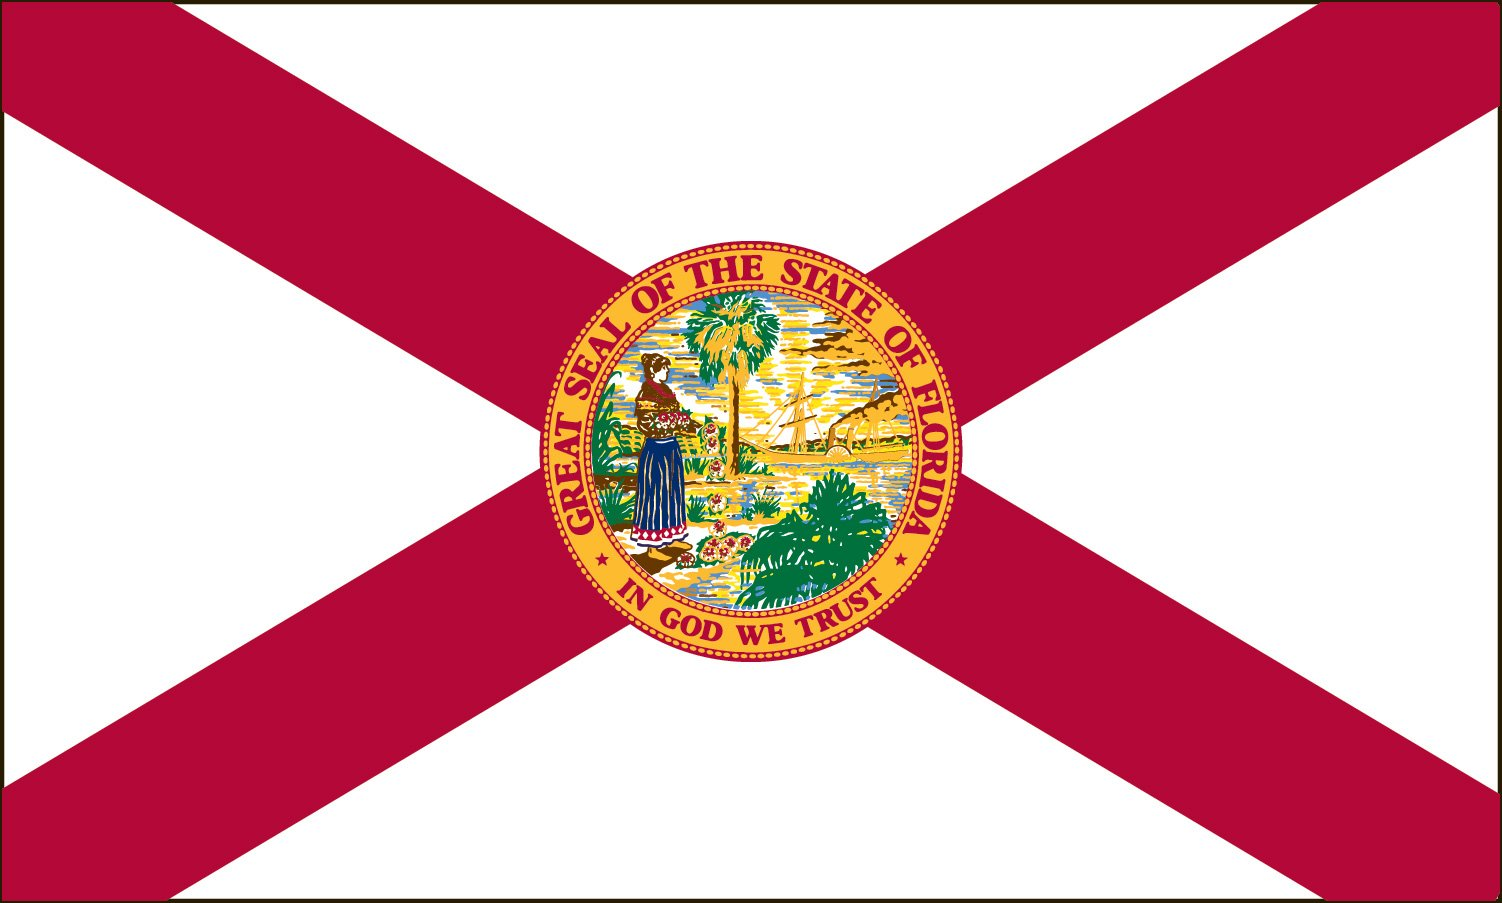 Valley Forge Flag 5-Foot by 8-Foot Nylon Florida State Flag with Canvas Header and Grommets by Valley Forge